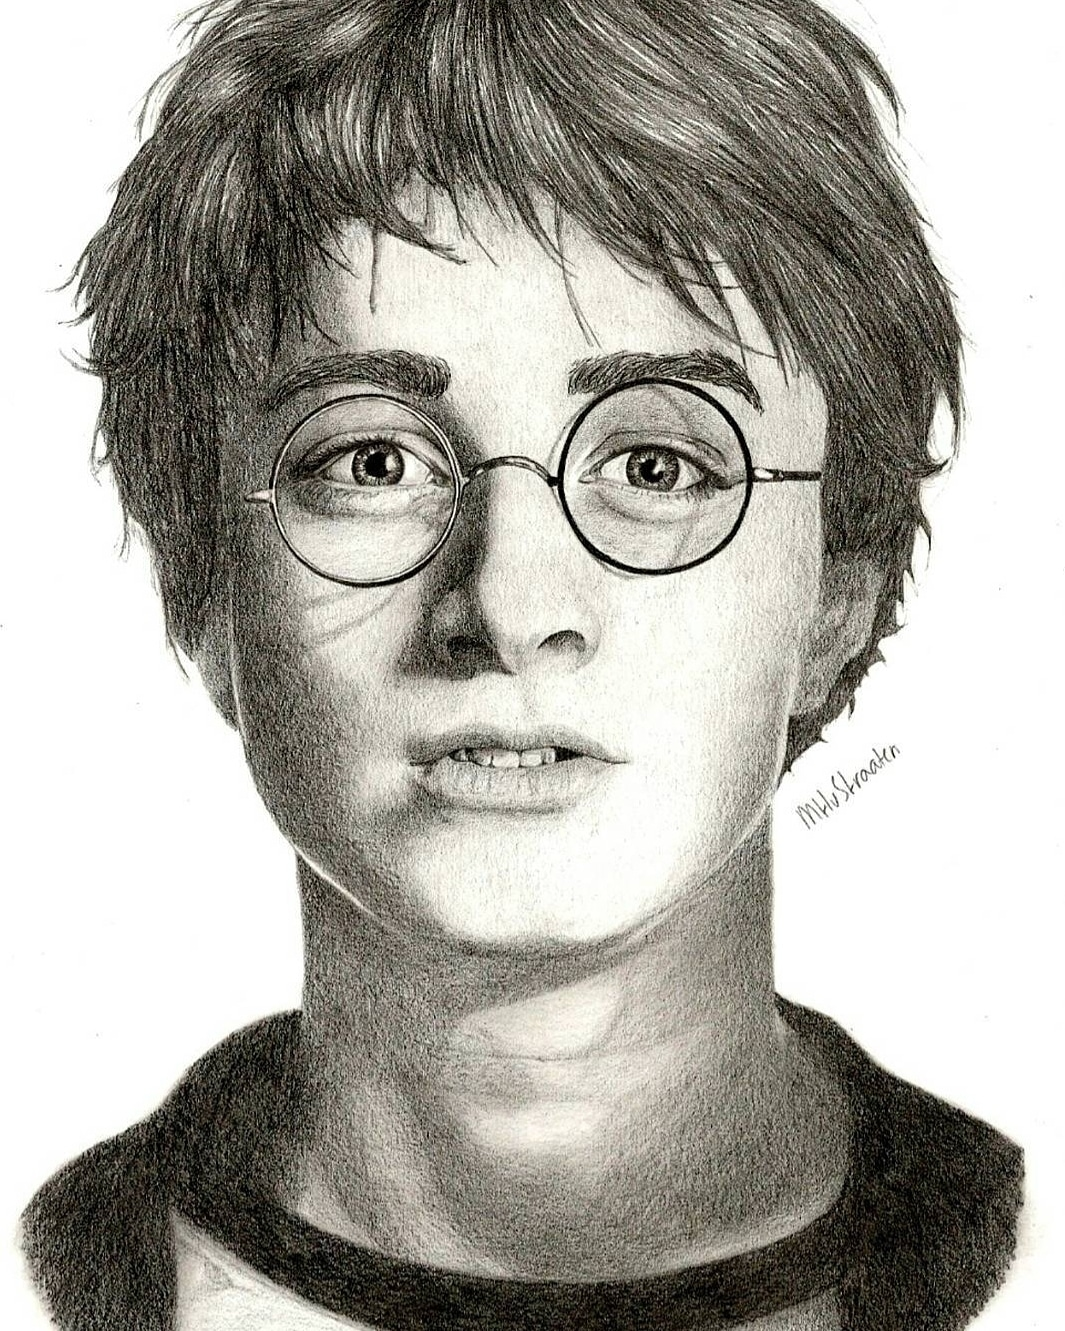 Portrait Drawing I Made Of Daniel Radcliffe As Harry